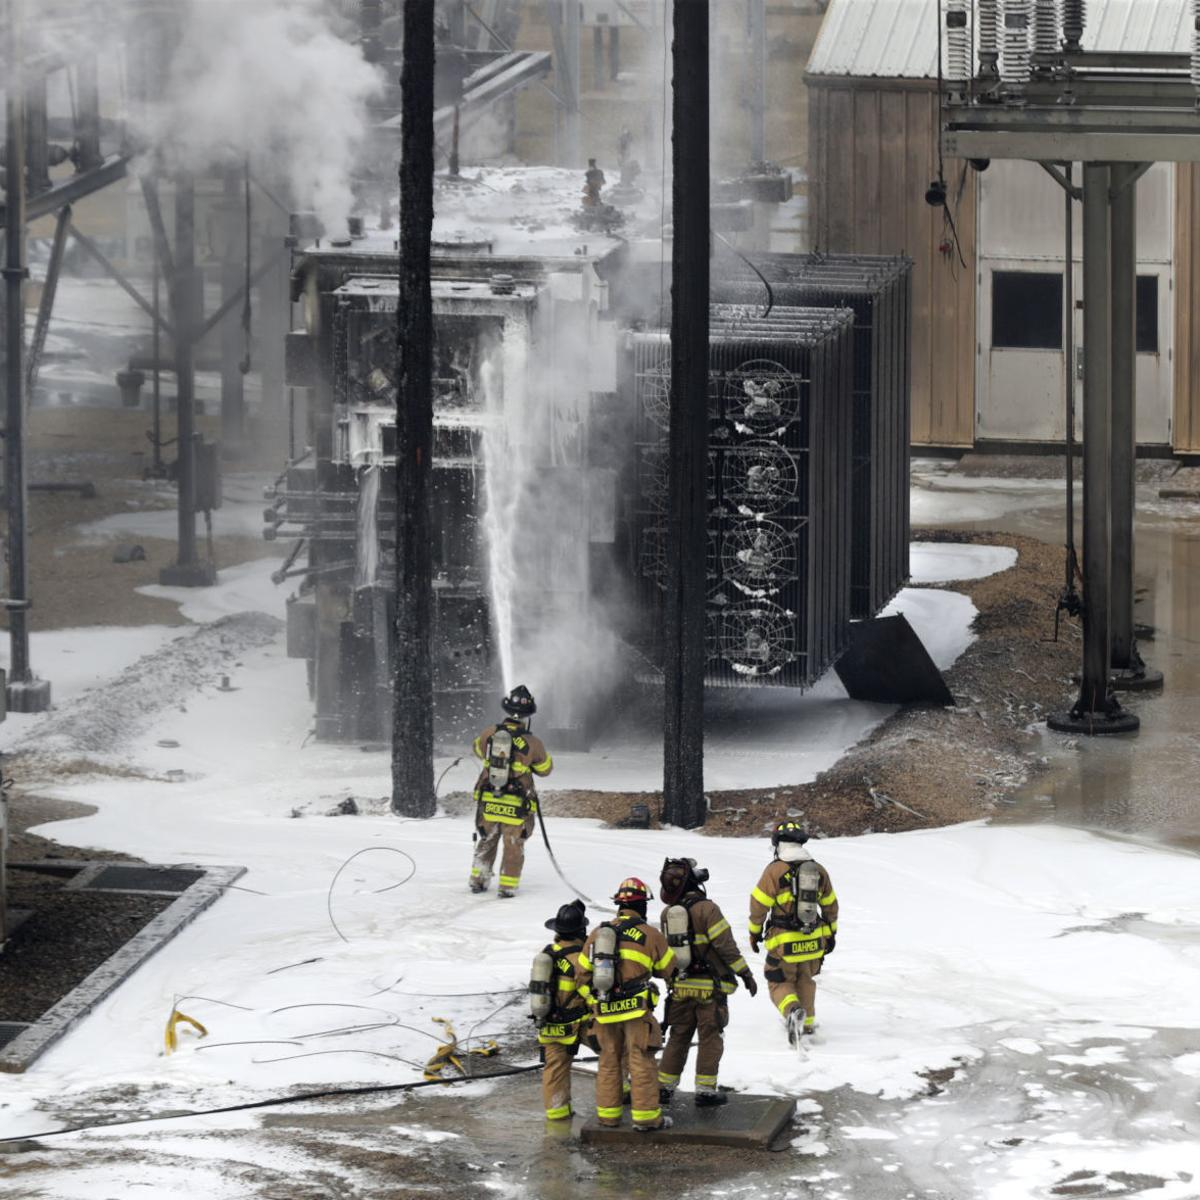 Tests show low levels of PFAS after Madison substation fire